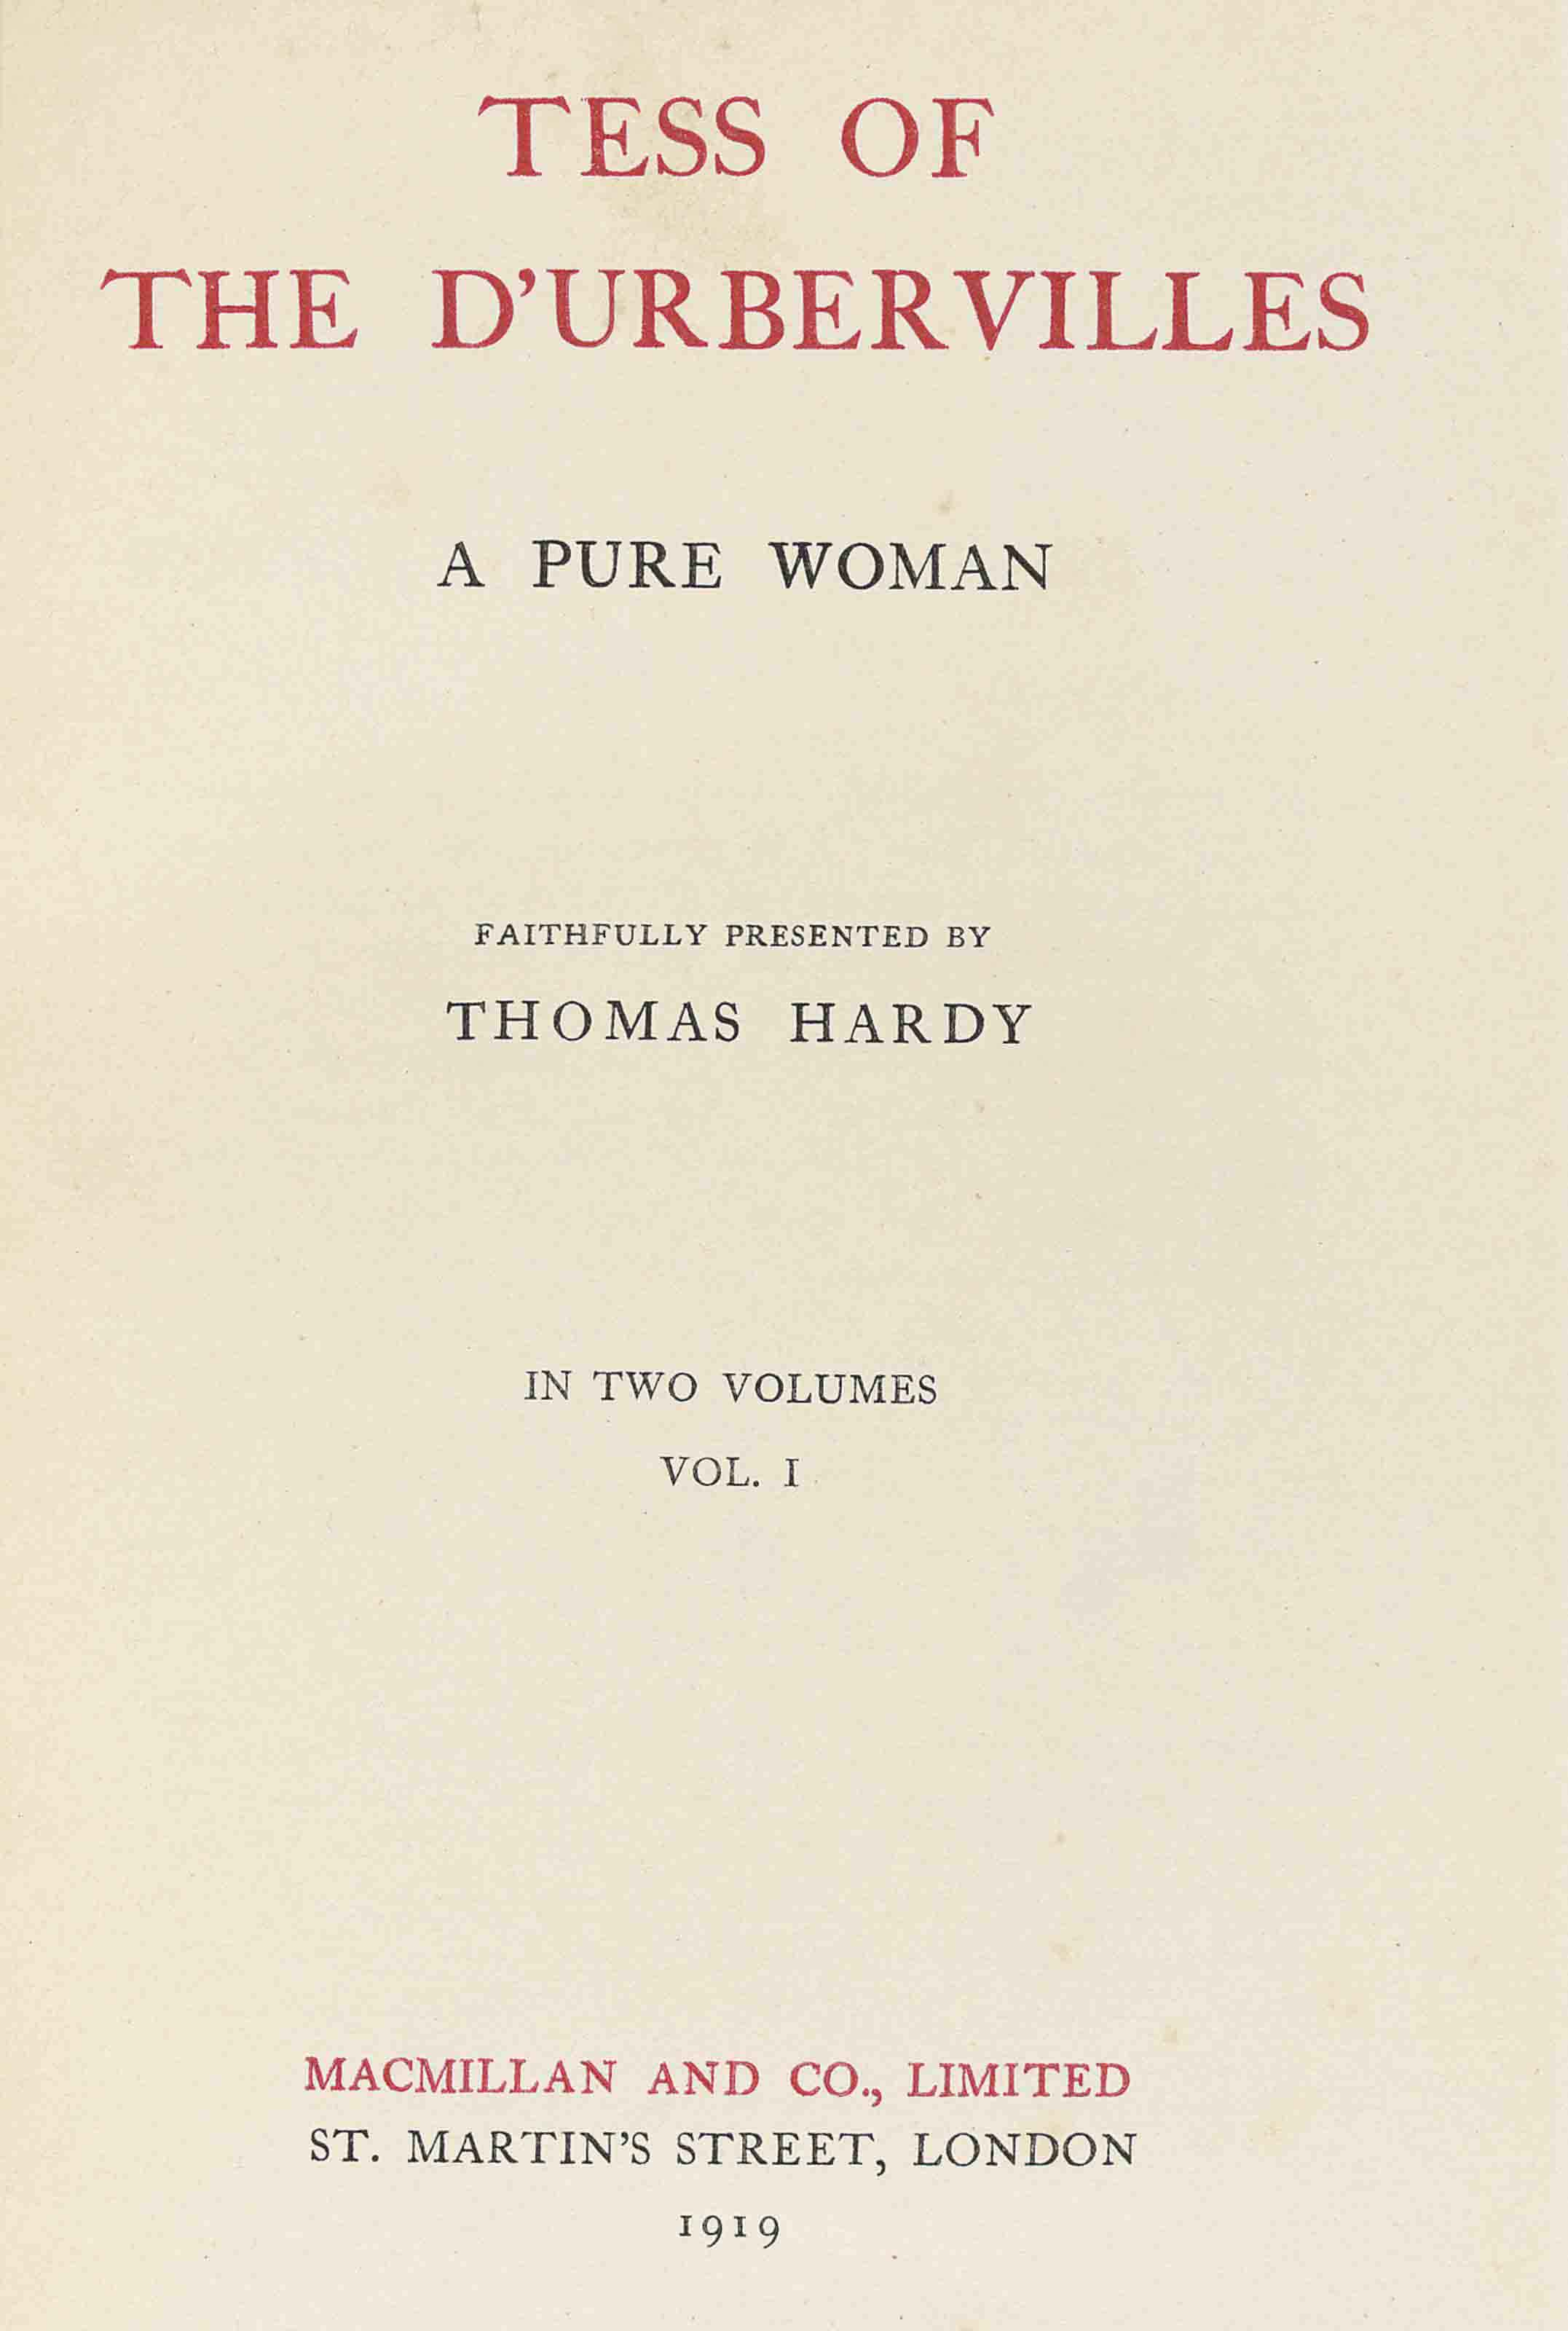 HARDY, Thomas (1840-1928). The Works. London: Macmillan, 1919-20. 37 vols., 8° (230 x 150mm). Frontispiece portrait of the author after William Strang in vol. I (light offset to title page in vol. I, light spotting to first few pages of vol. II.) Modern blue half morocco gilt, front covers embossed with the author's monogram, spines lettered and ruled in gilt, uncut.